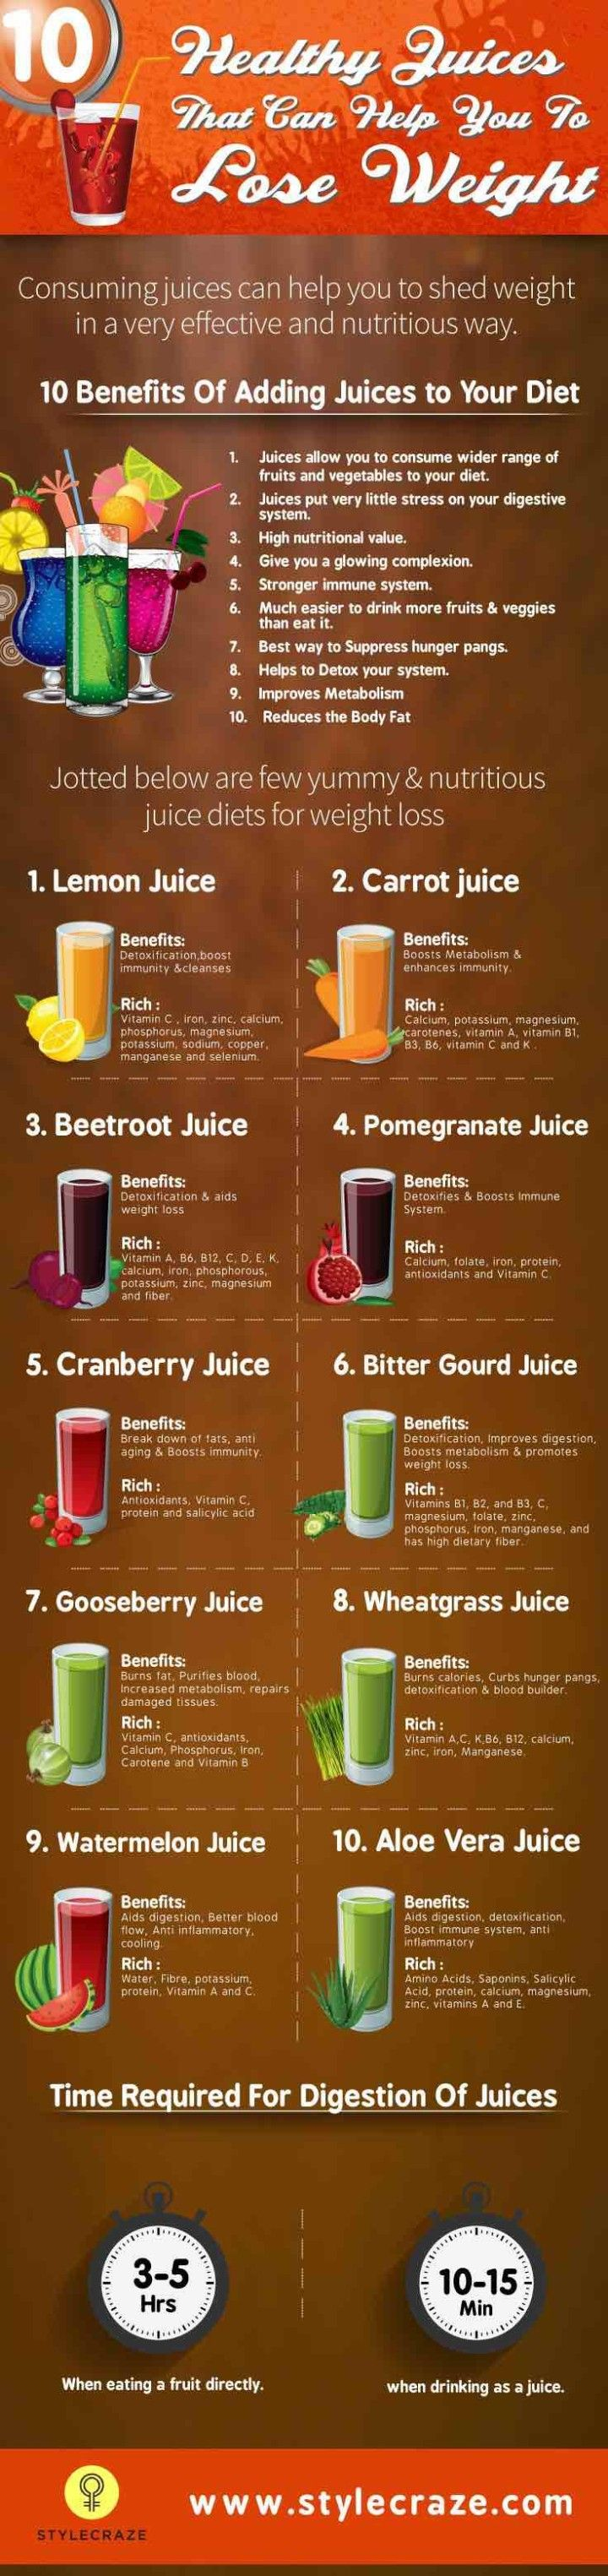 Juicing Recipes for Detoxing and Weight Loss - MODwedding